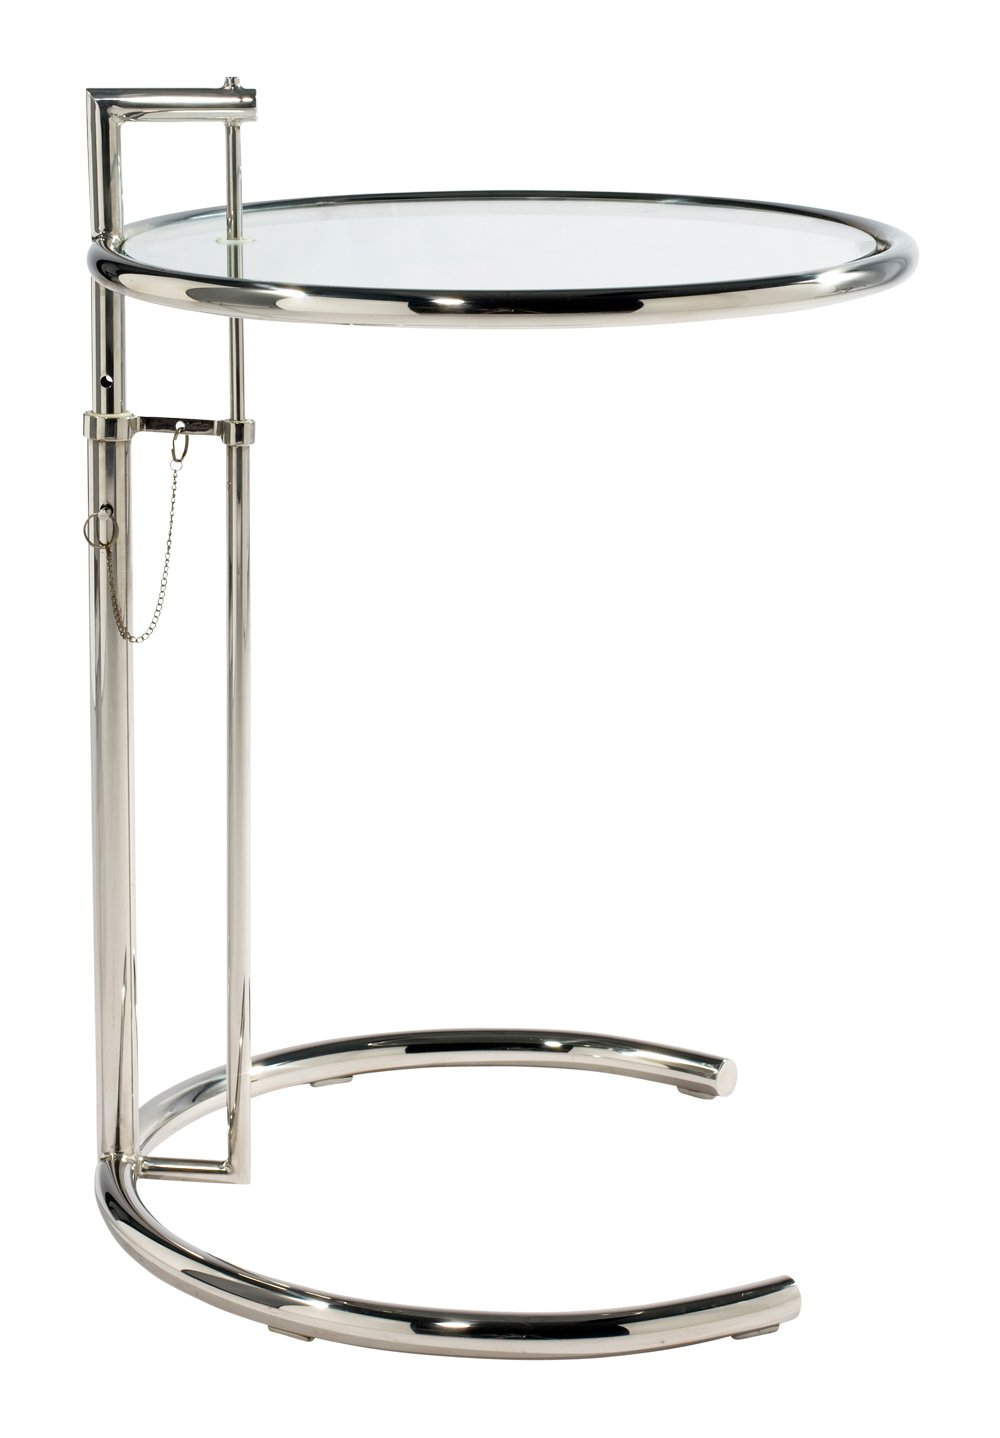 Eileen Gray Style Cocktail Table - Chrome Vita Interiors